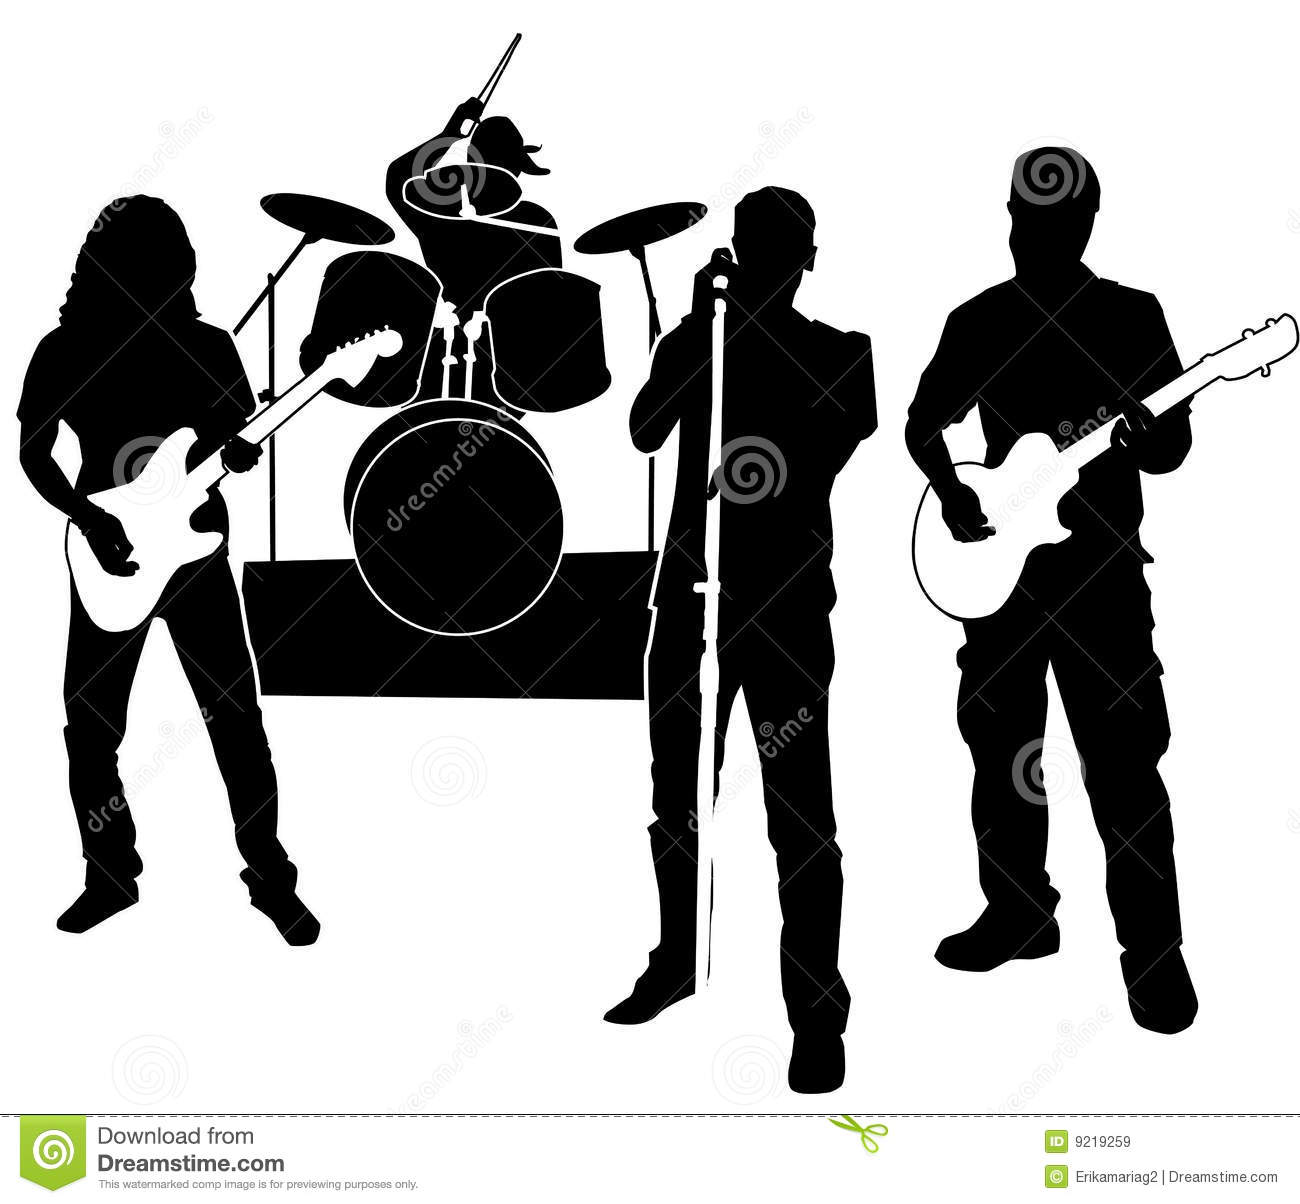 Silhouette - Rock Band Royalty Free Stock Images - Image: 9219259 Rock Band Silhouette